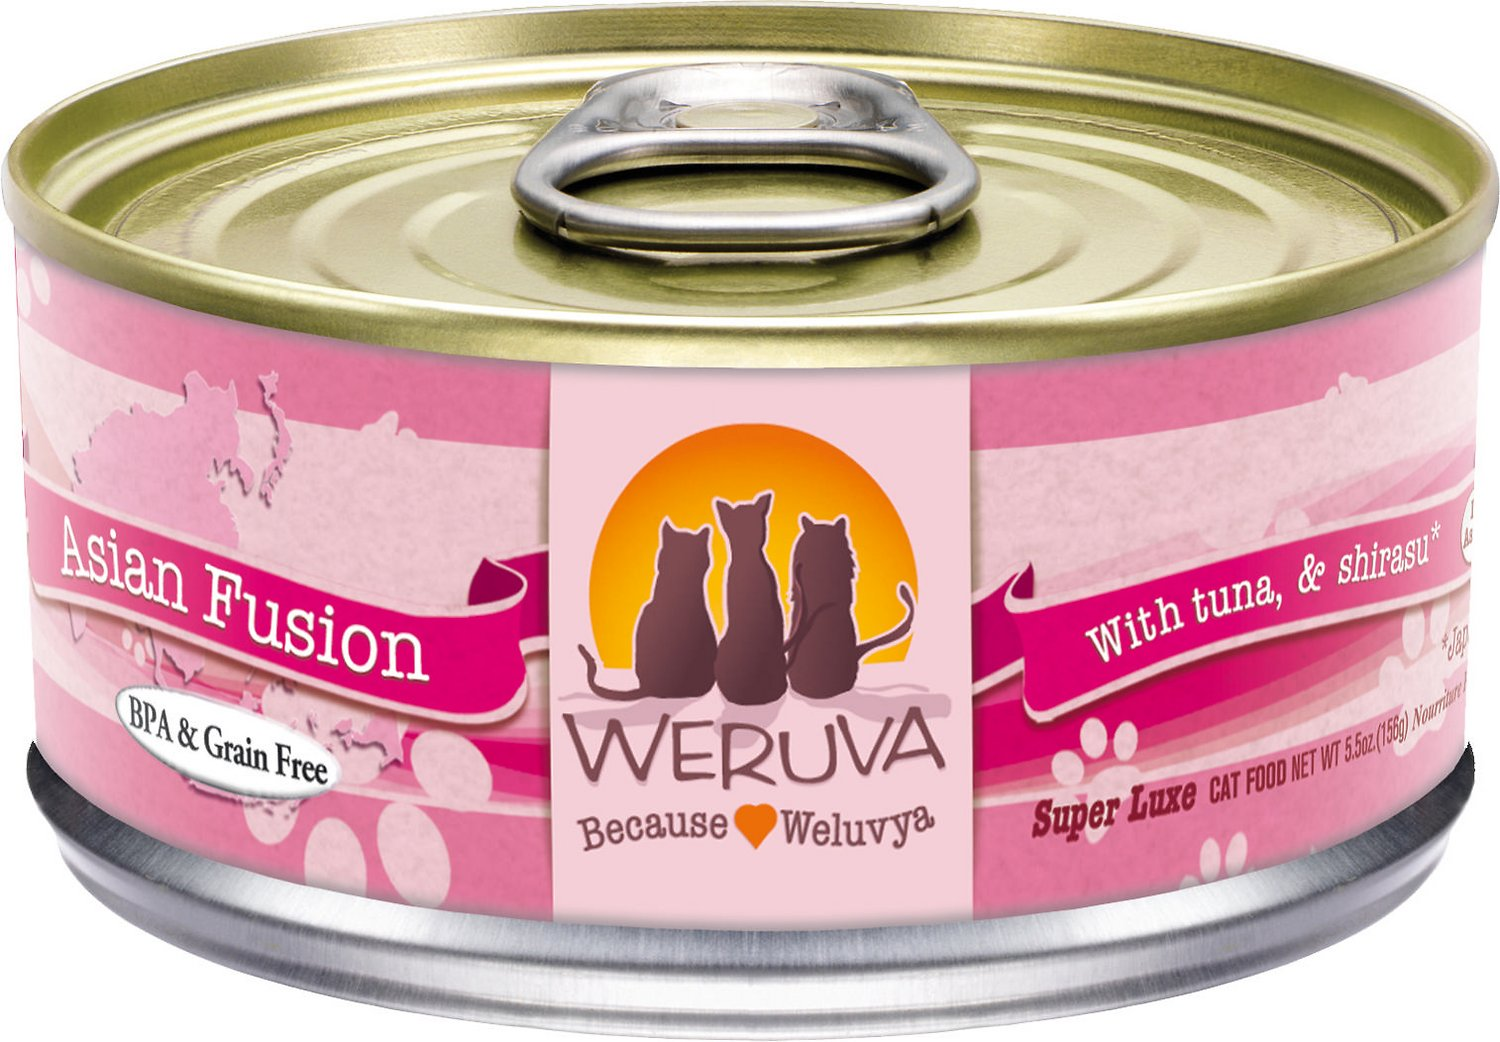 Weruva Cat Classic Asian Fusion with Tuna & Shirasu Grain-Free Wet Cat Food, 3-oz